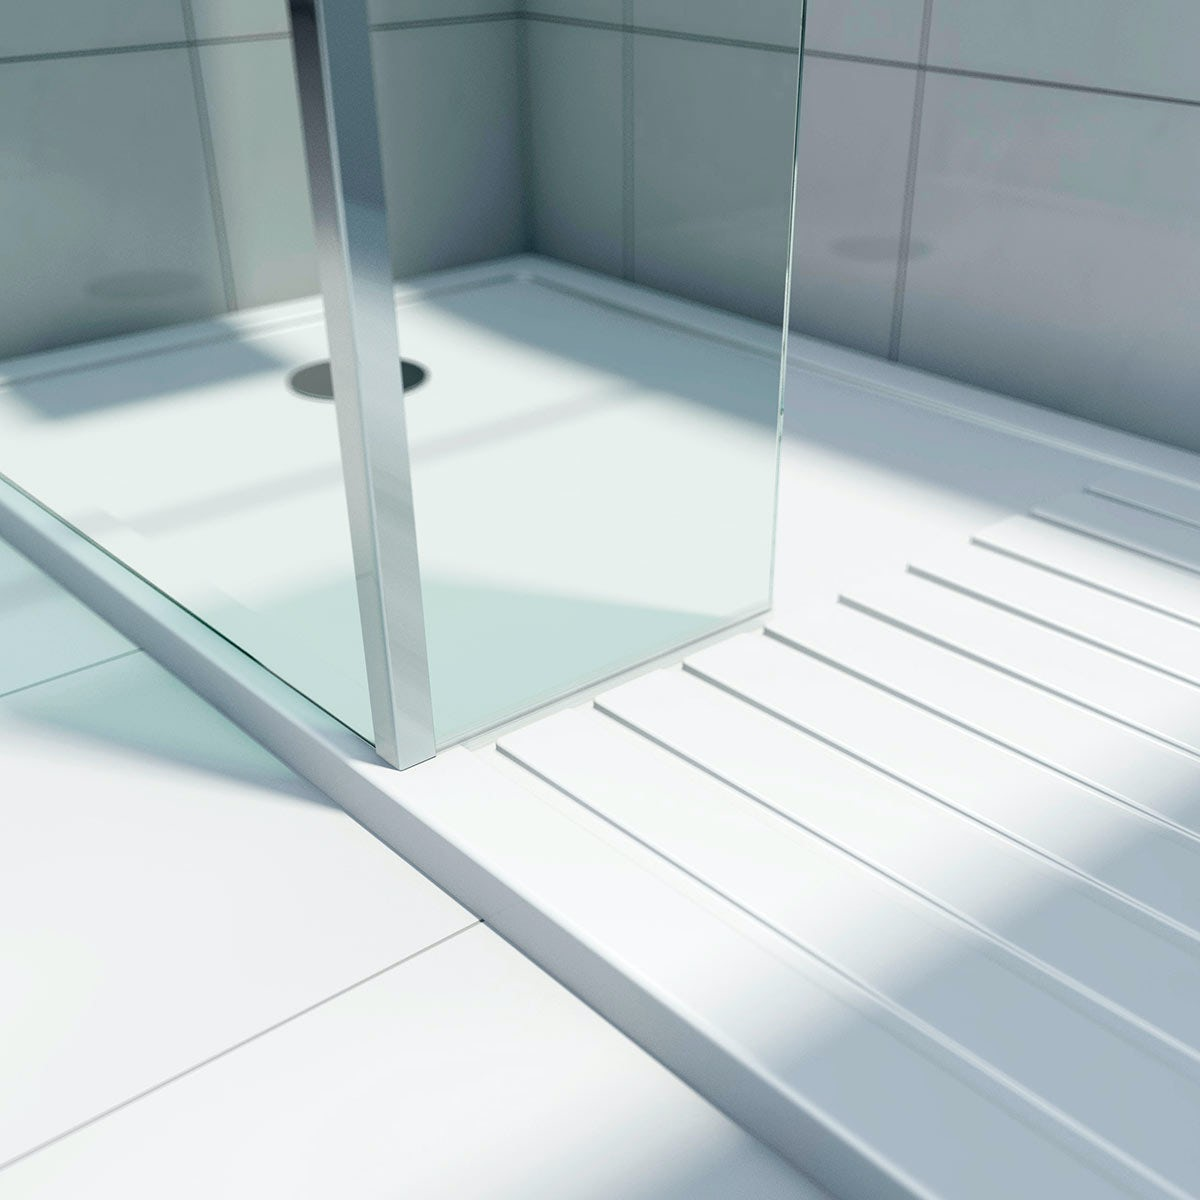 Fitting A Shower Tray >> Mode Luxury 8mm Walk In Shower Enclosure Pack With Tray | VictoriaPlum.com